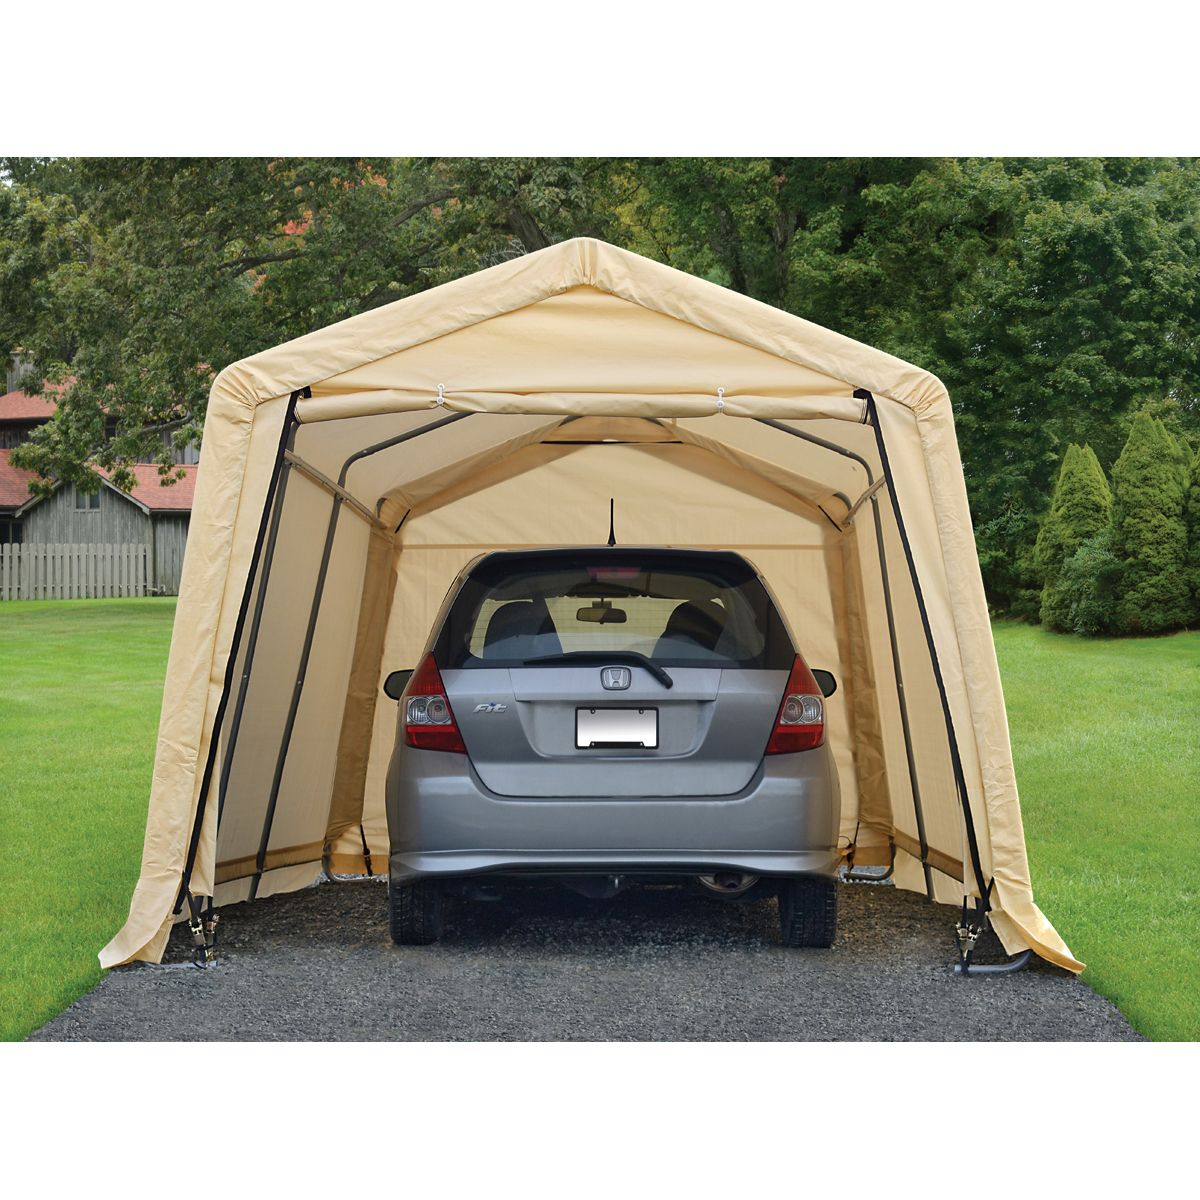 10 Ft X 17 Ft Portable Garage In 2020 Portable Garage Guest House Shed Camping Pod